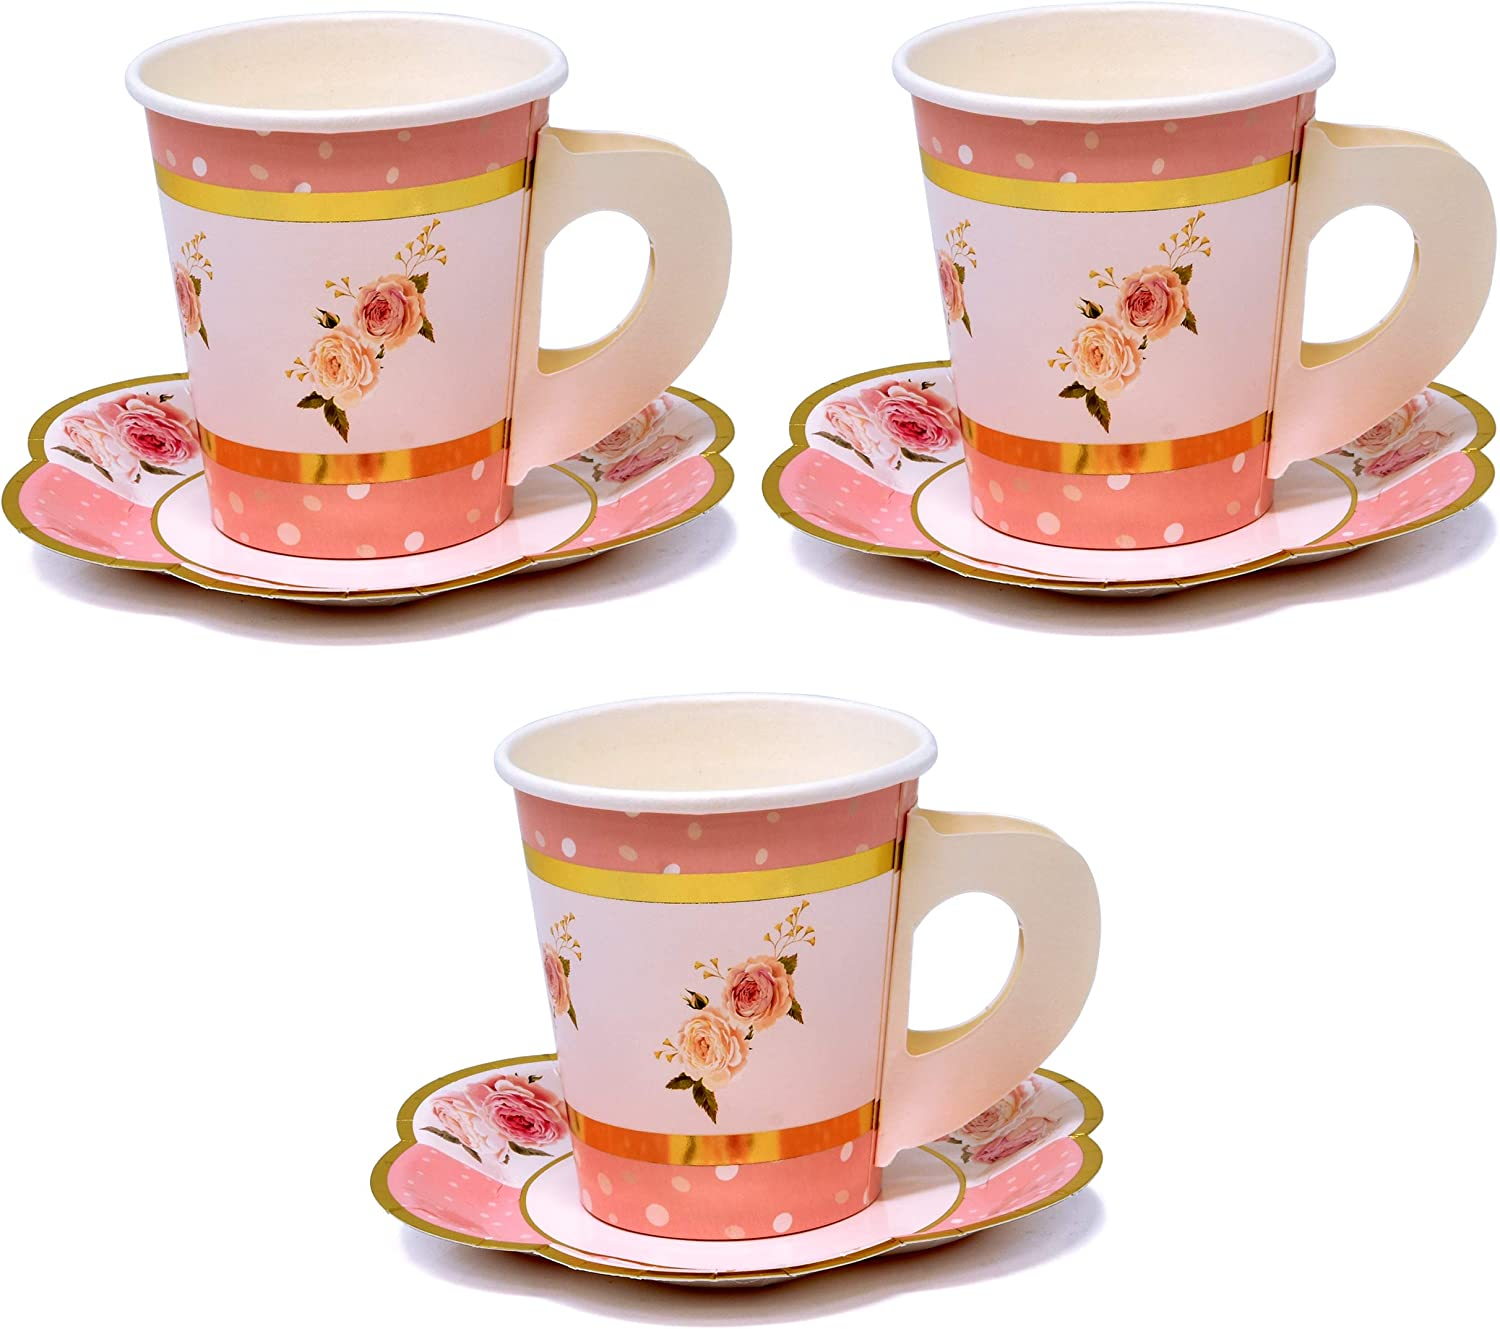 """36 Disposable Tea Party Cups 5 oz 3"""" 36 Saucers 5"""" Paper Floral Shaped Plate Teacup Set with Handle for Kids Girls Mom Coffee Mugs Wedding Birthday Baby Bridal Shower Gold Foil & Pink Table Supplies"""